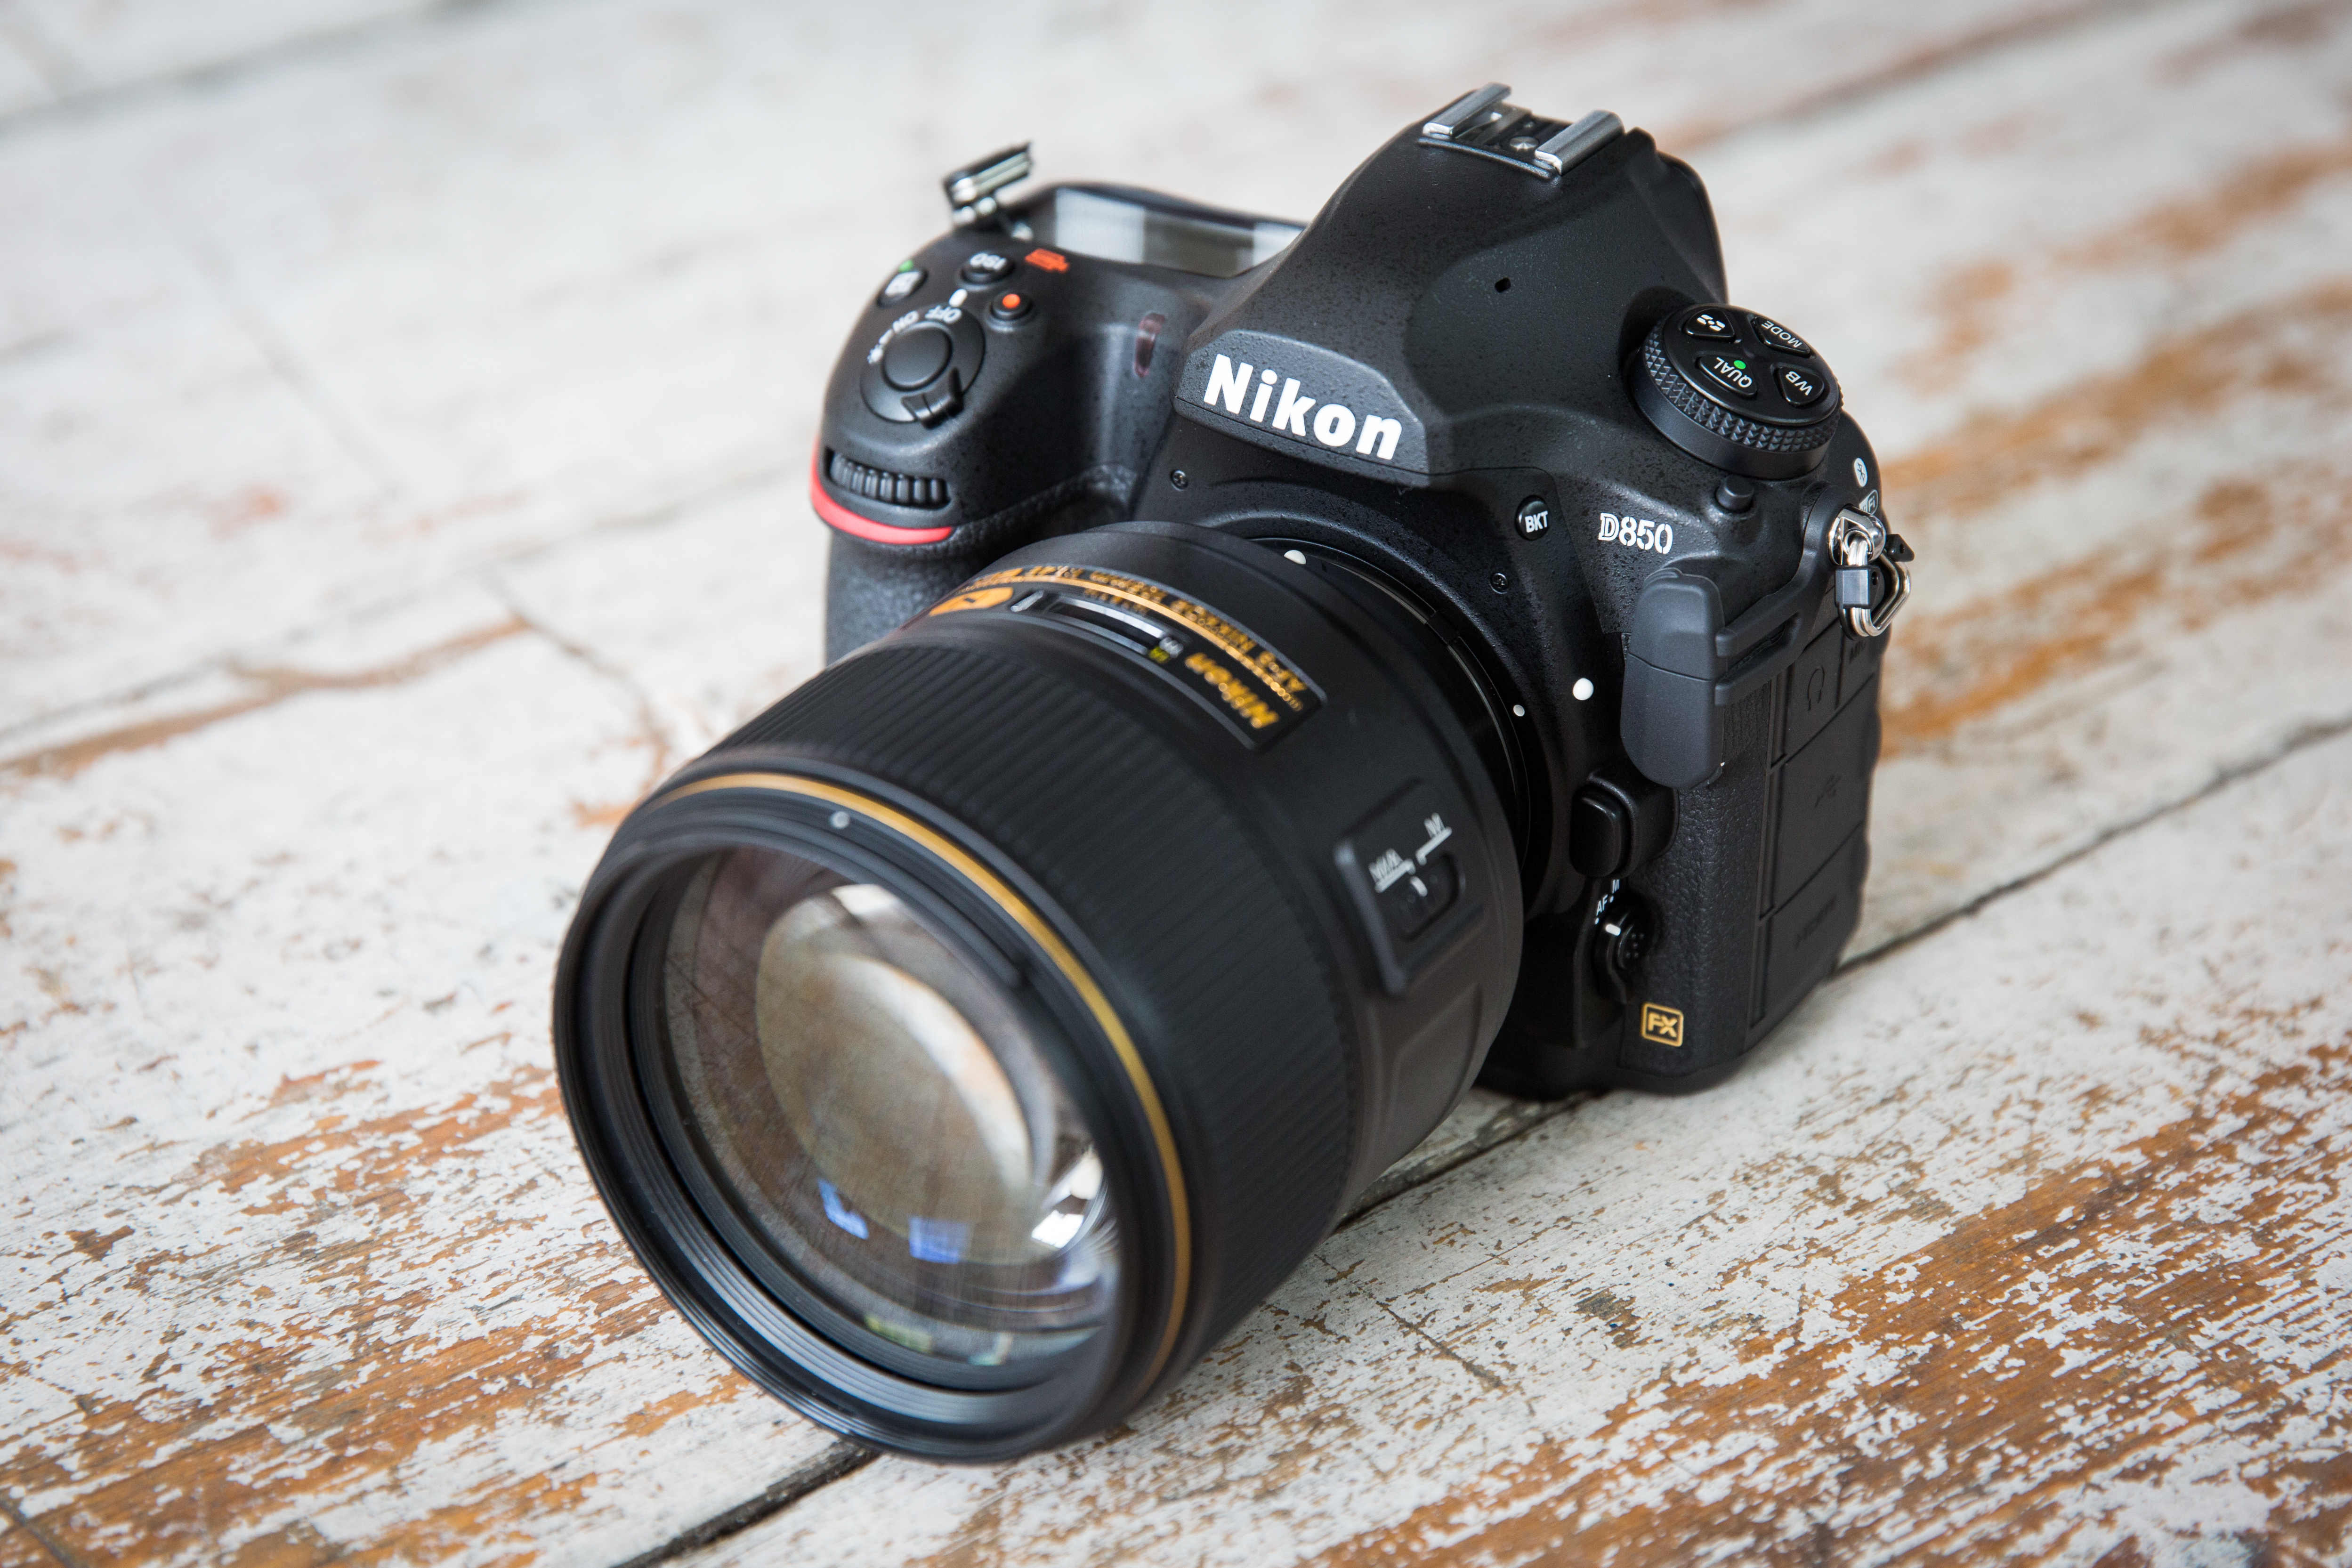 Nikon D850 Could This The Best All Round Dslr On The Market